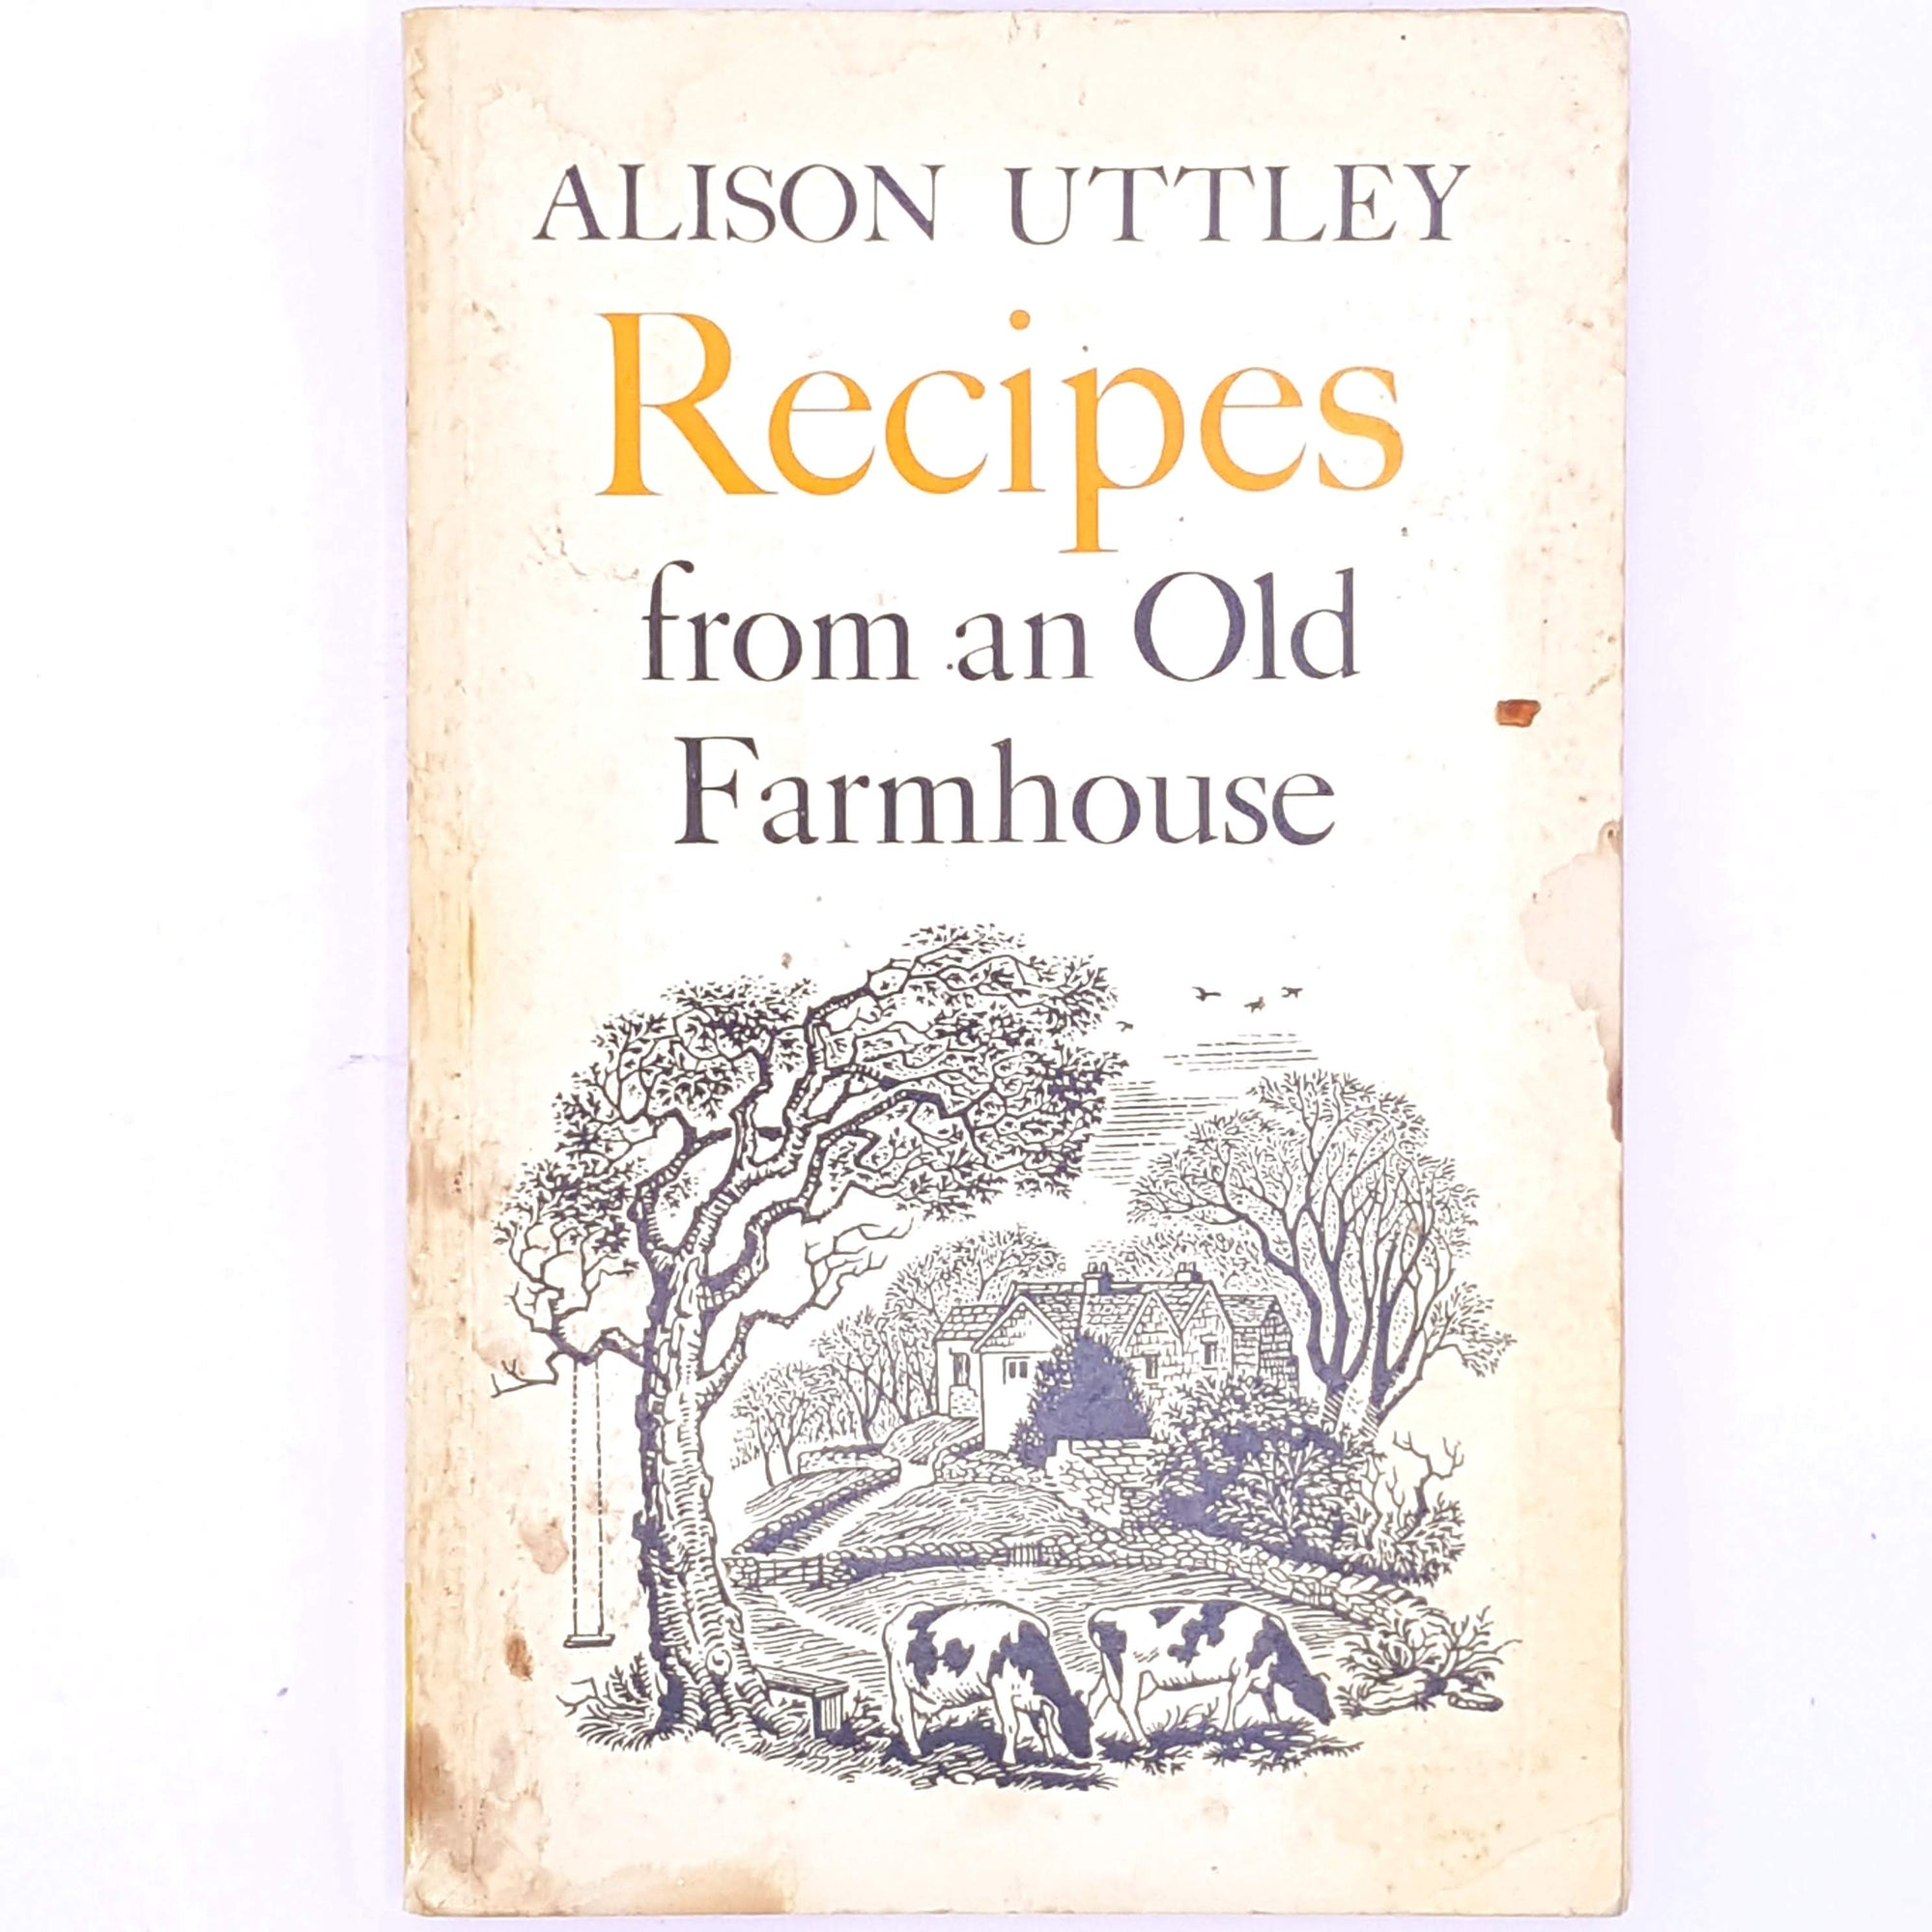 Recipes from an Old Farmhouse, Alison Uttley